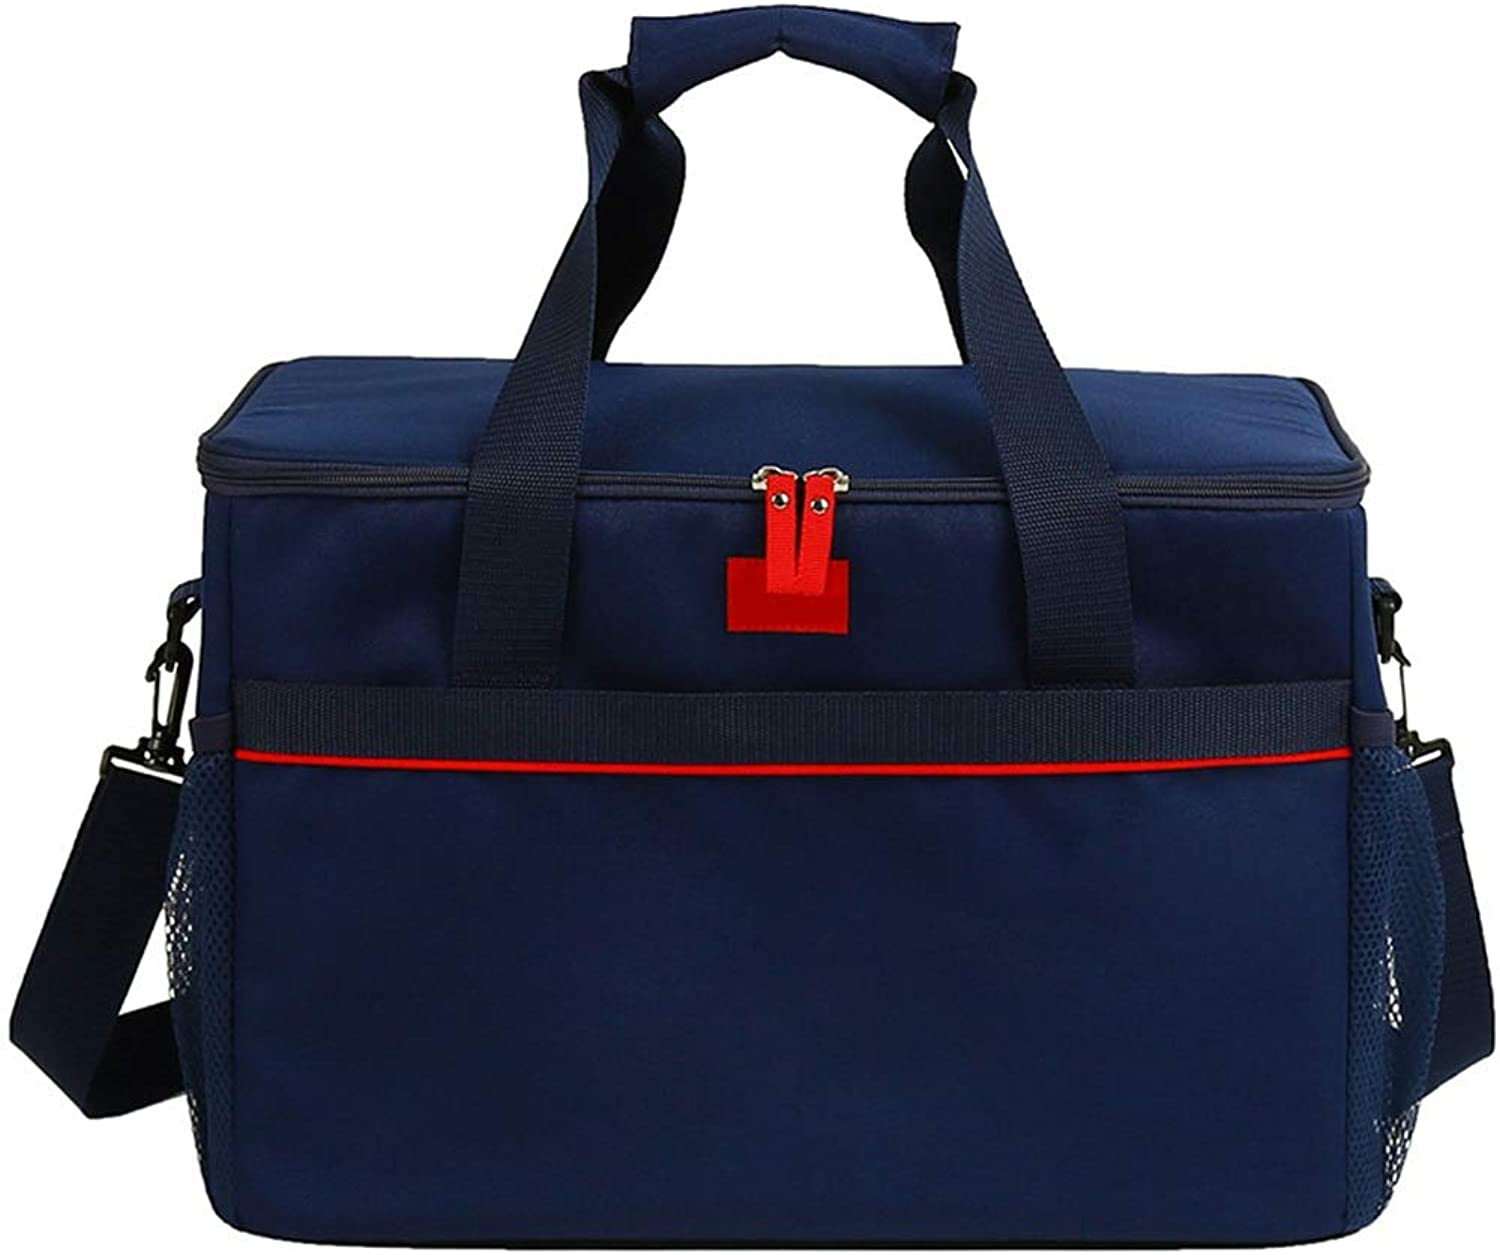 blueee 33L Thick Picnic Bag, Extra Large car Insulation Bag, Lunch Bag, Takeaway Bag, Waterproof Outdoor Insulation Bag